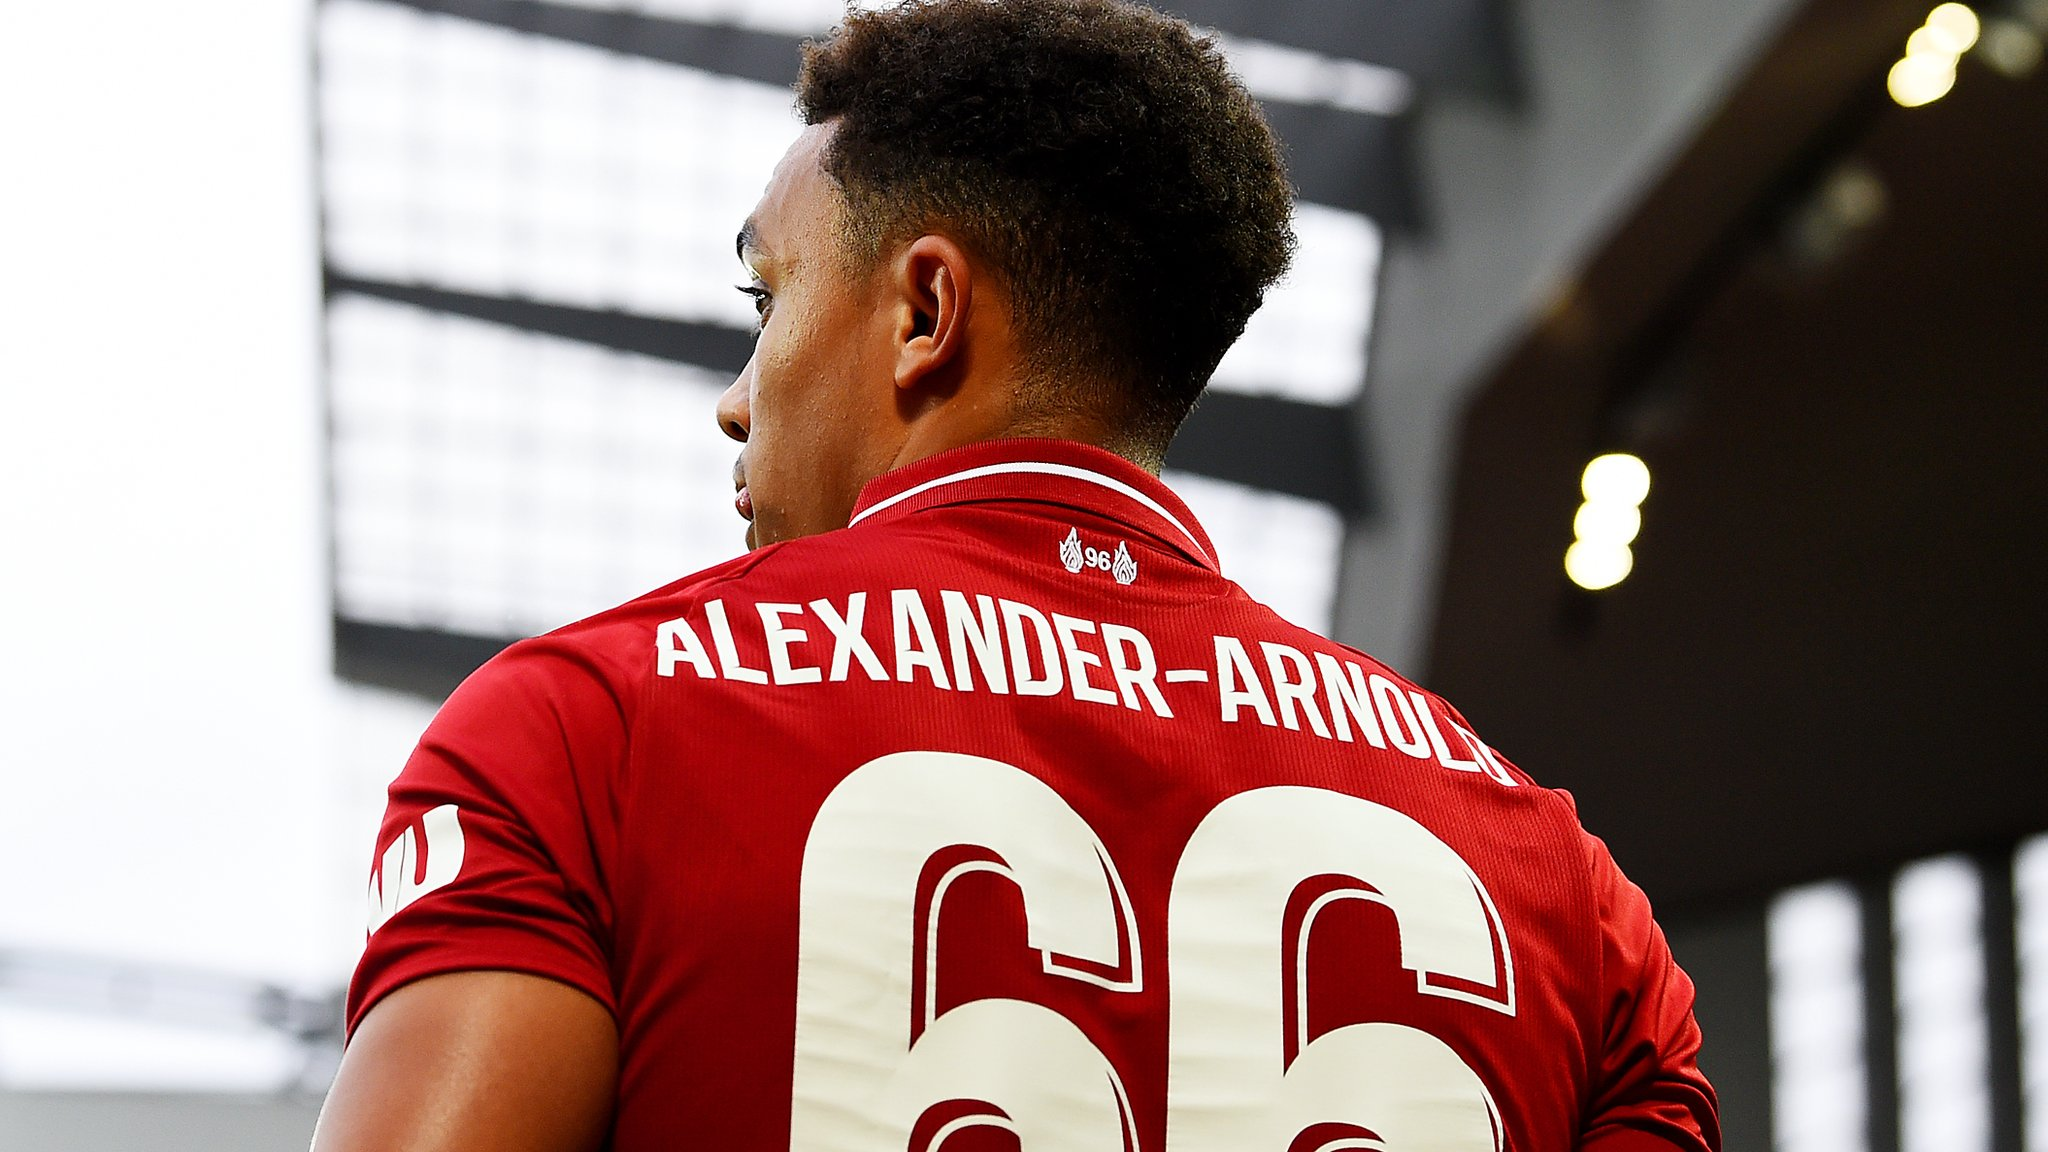 Anger, fear and ability - why Liverpool's Alexander-Arnold can back up the hype